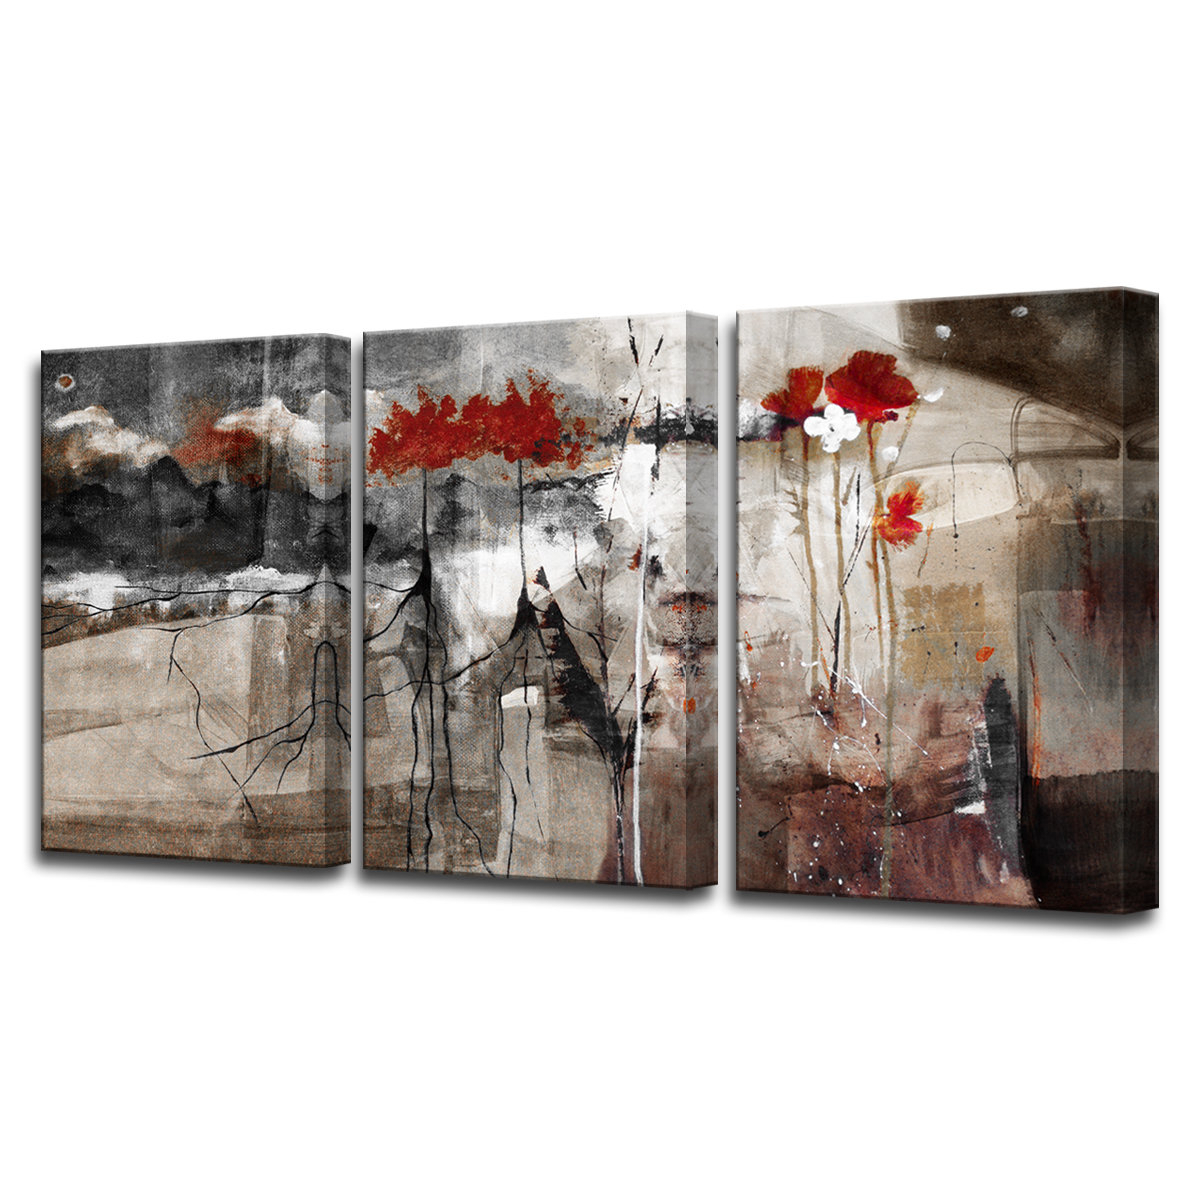 Preferred 3 Piece Wall Decor Sets By Wrought Studio Inside Wrought Studio 'abstract' 3 Piece Print Of Painting On Canvas Set (Gallery 1 of 20)